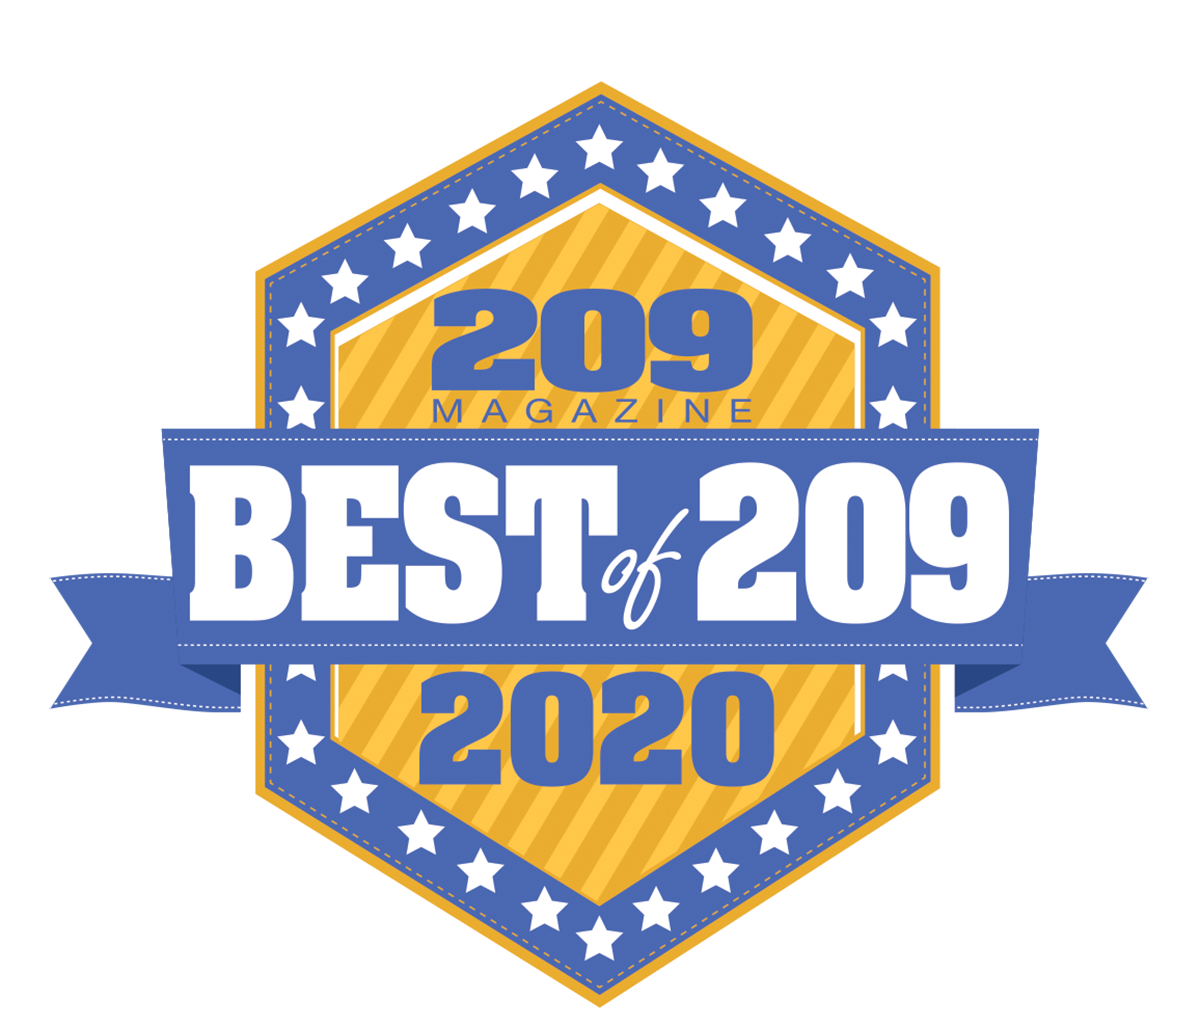 Best of 2020 209 Magazine